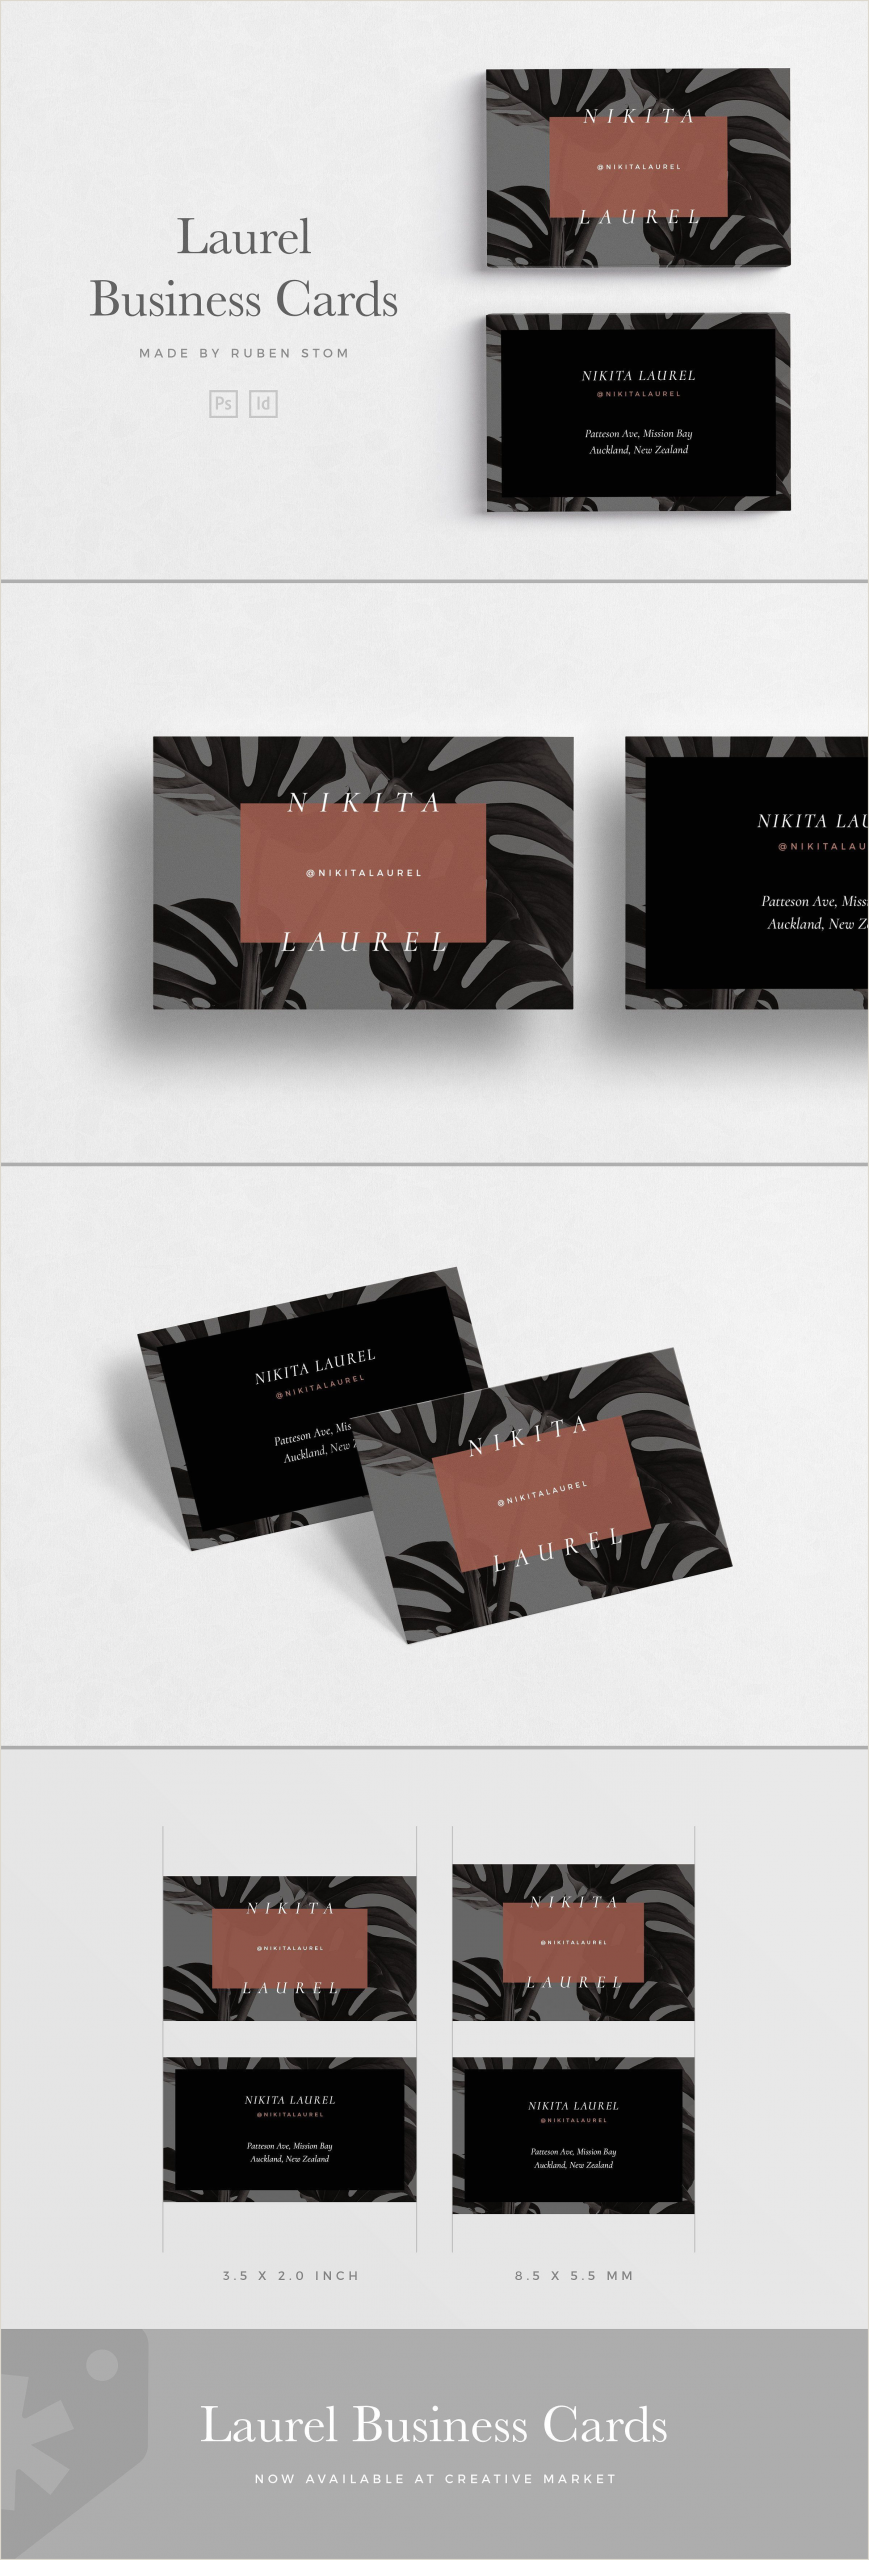 Business Cards Beautiful Unique Nature Water 60 Best ✏ Business Card Templates Images